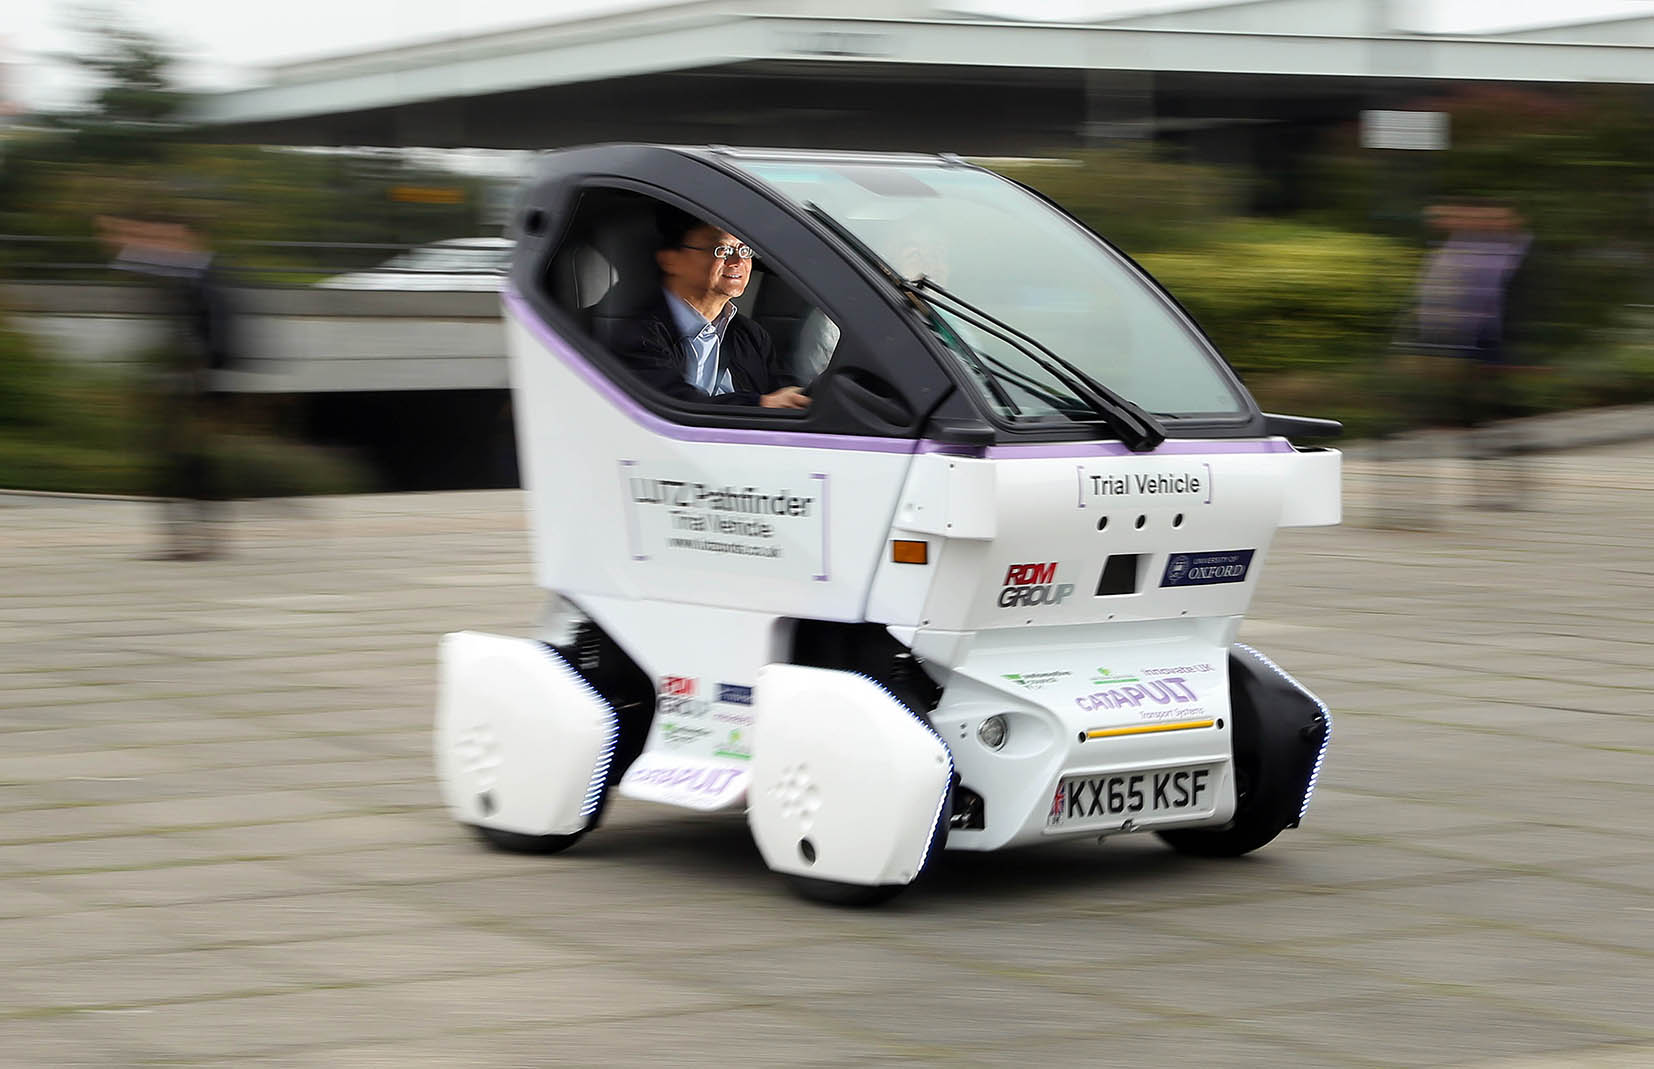 EDITORIAL USE ONLY Eric Chan, Principal Technologist Transport Systems Catapult, takes Harry Hess from Ampthill for a ride as the UK's Transport Systems Catapult unveils its first LUTZ Pathfinder pod vehicle to commuters outside Milton Keynes Central train station, as part of a project trialling self-driving technology in pedestrianised areas. PRESS ASSOCIATION Photo. Picture date: Tuesday September 15, 2015. Following the presentation, the pod will be delivered to Oxford University's Mobile Robotics Group to begin the installation of the vehicle's autonomous control system before undergoing a series of calibration tests to become the first fully automated vehicles on public pedestrianised areas in the UK. Photo credit should read: Geoff Caddick/PA Wire